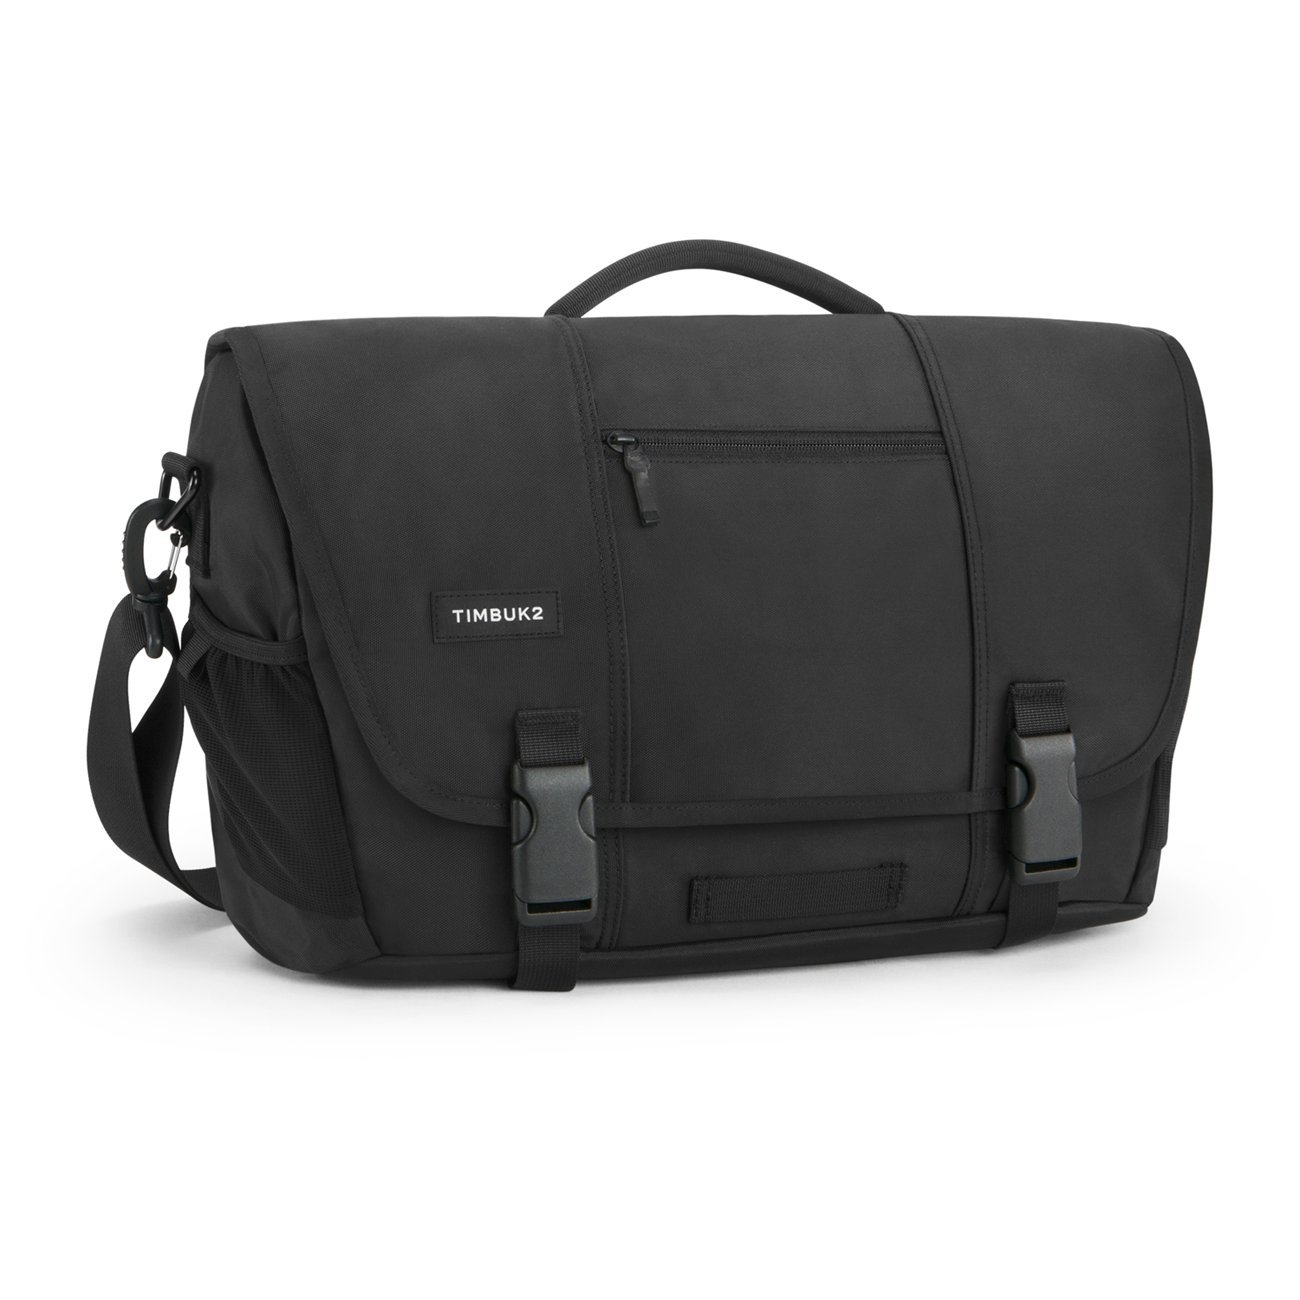 Timbuk2 Commute Messenger Bag, Black, Medium